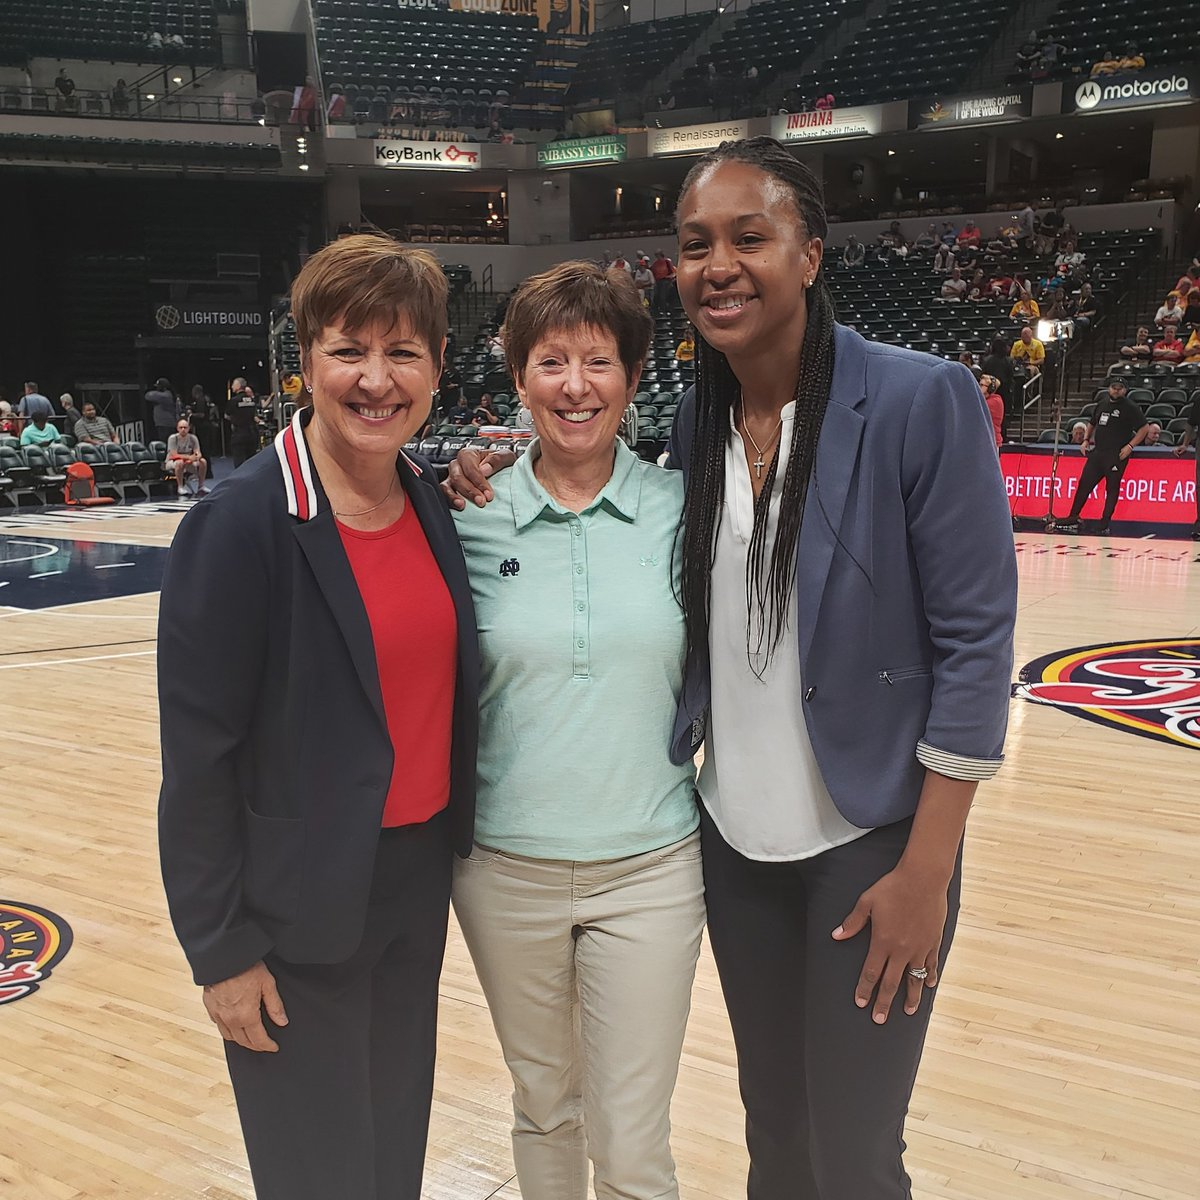 Always a great time when we welcome one of the greatest coaches & HOF'er in the building  😍💪🏽❤ @indianafever @ndwbb @bankerslifefieldhouse @allisonbarber8  .   .   . #Inspire #IMPACT #ChangingLives #HOF #Trailblazer #Legendary #GoIrish #Shero #FeverBeliever❤❤ #SoBlessed🙏🏽❤️